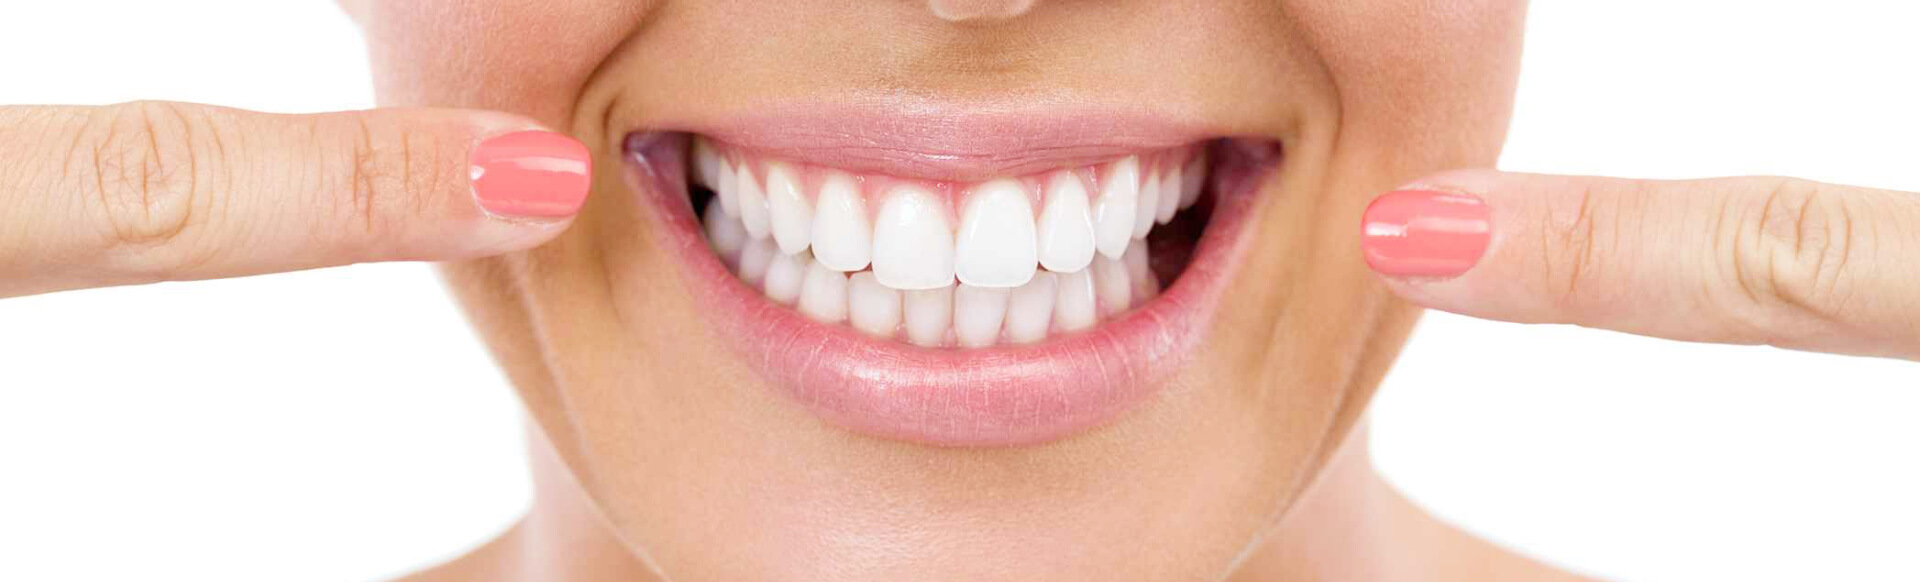 What Can Cause Sensitive Teeth?